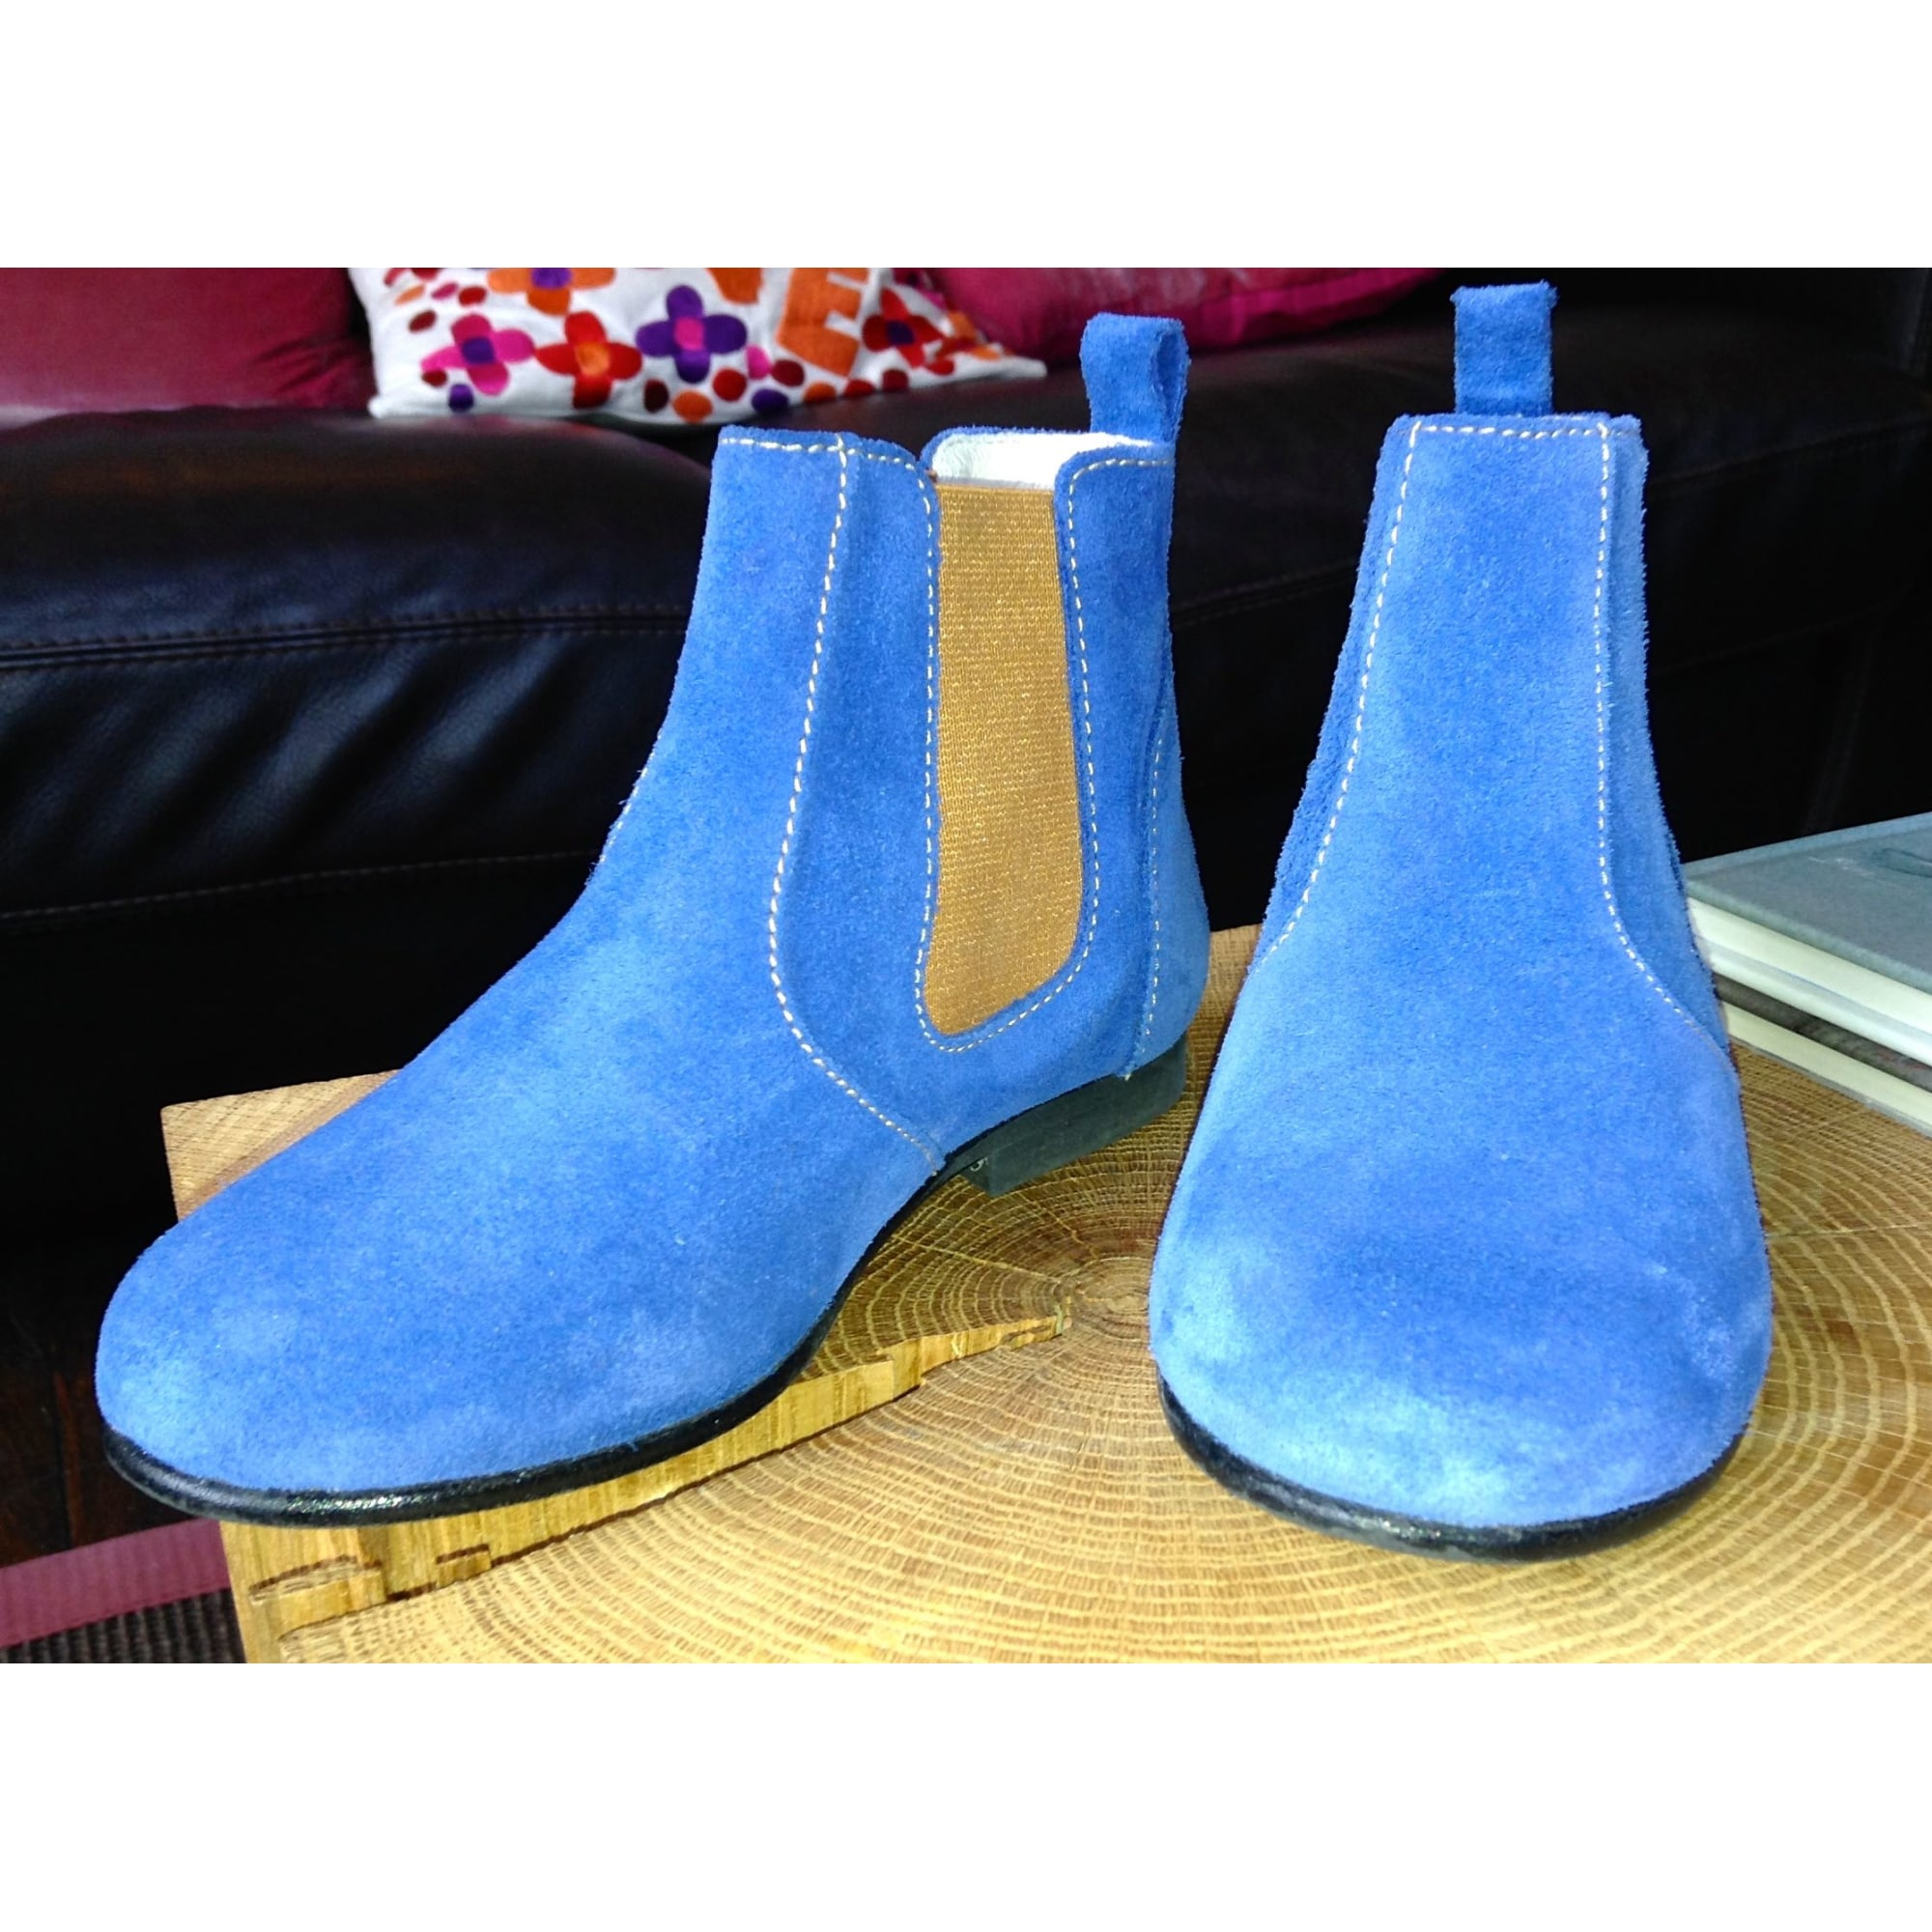 Ankle Boots CLOTAIRE Blue, navy, turquoise